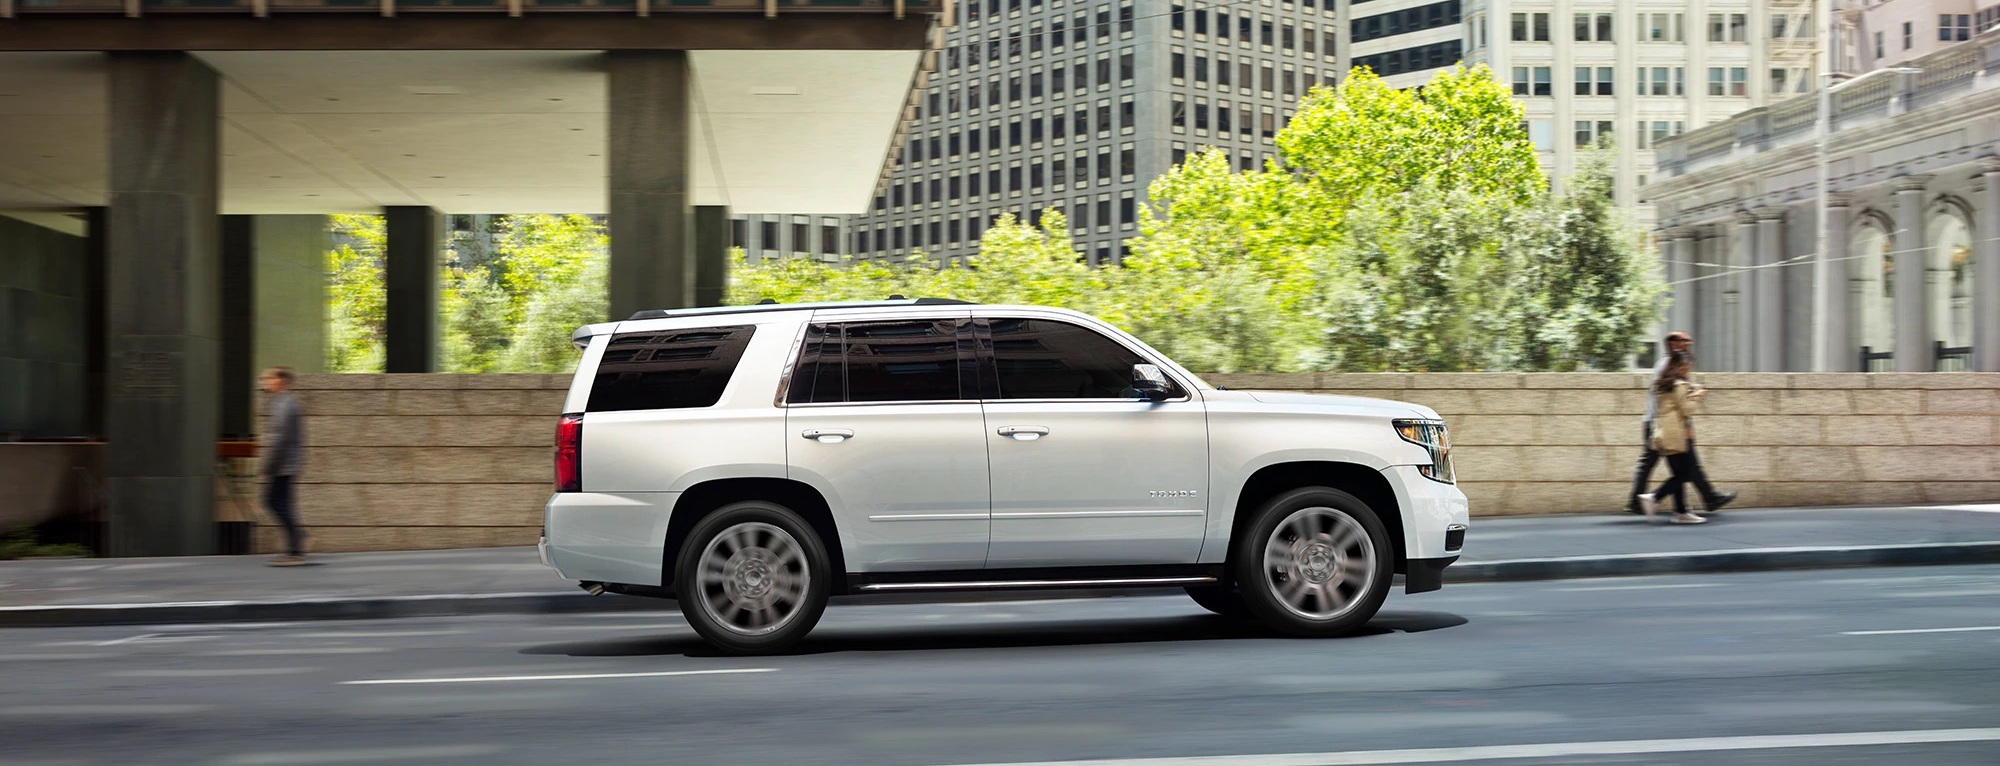 2020 Chevrolet Tahoe for Sale near Homewood, IL